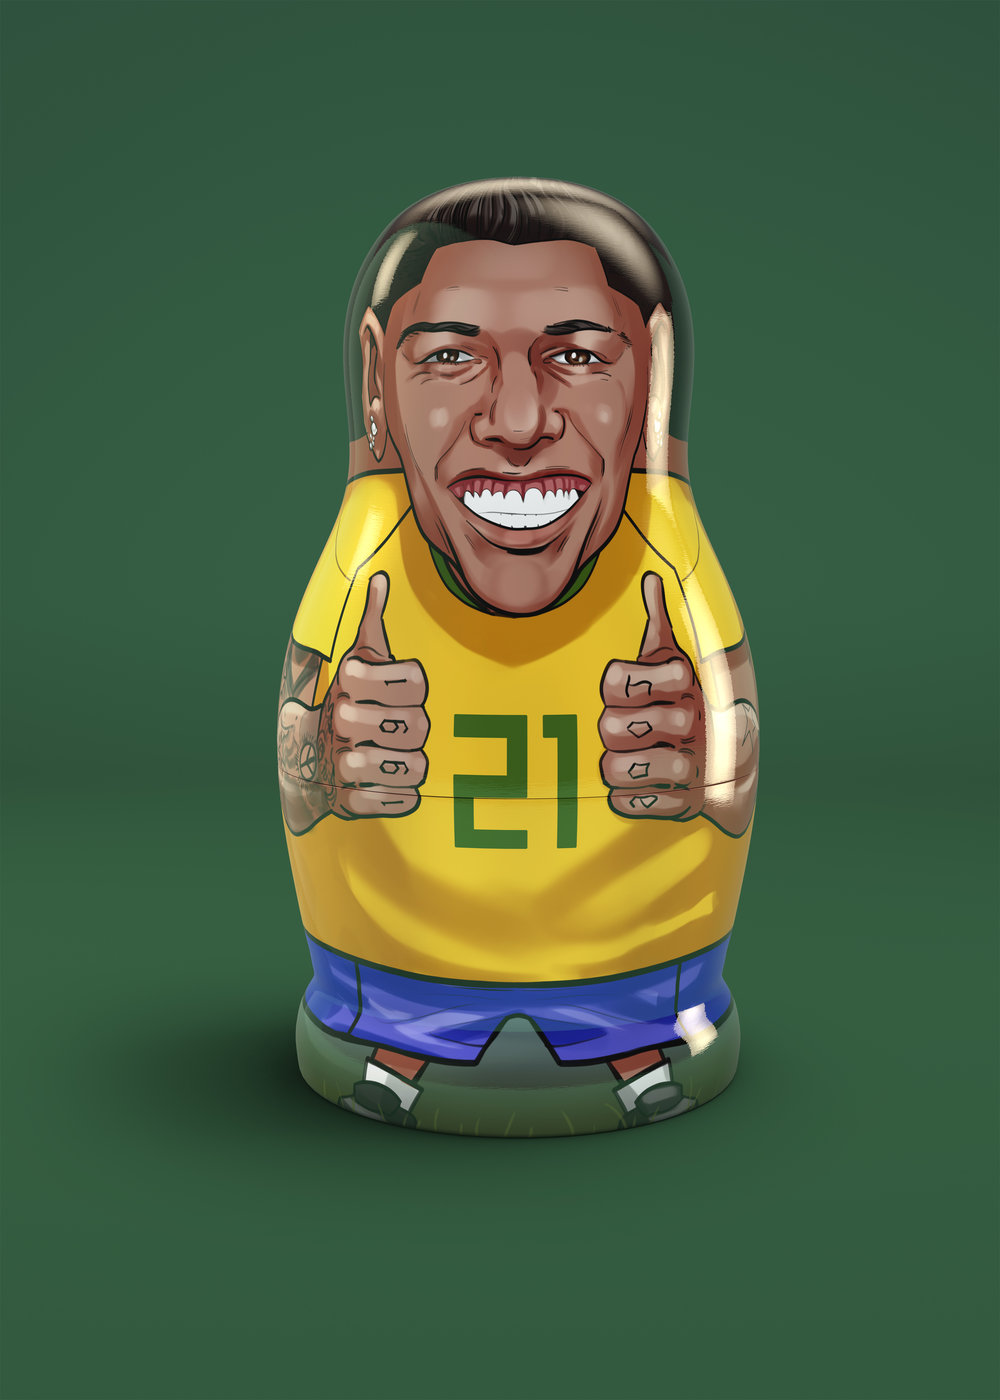 Firmino+layers+to+client+copy+copy.jpg